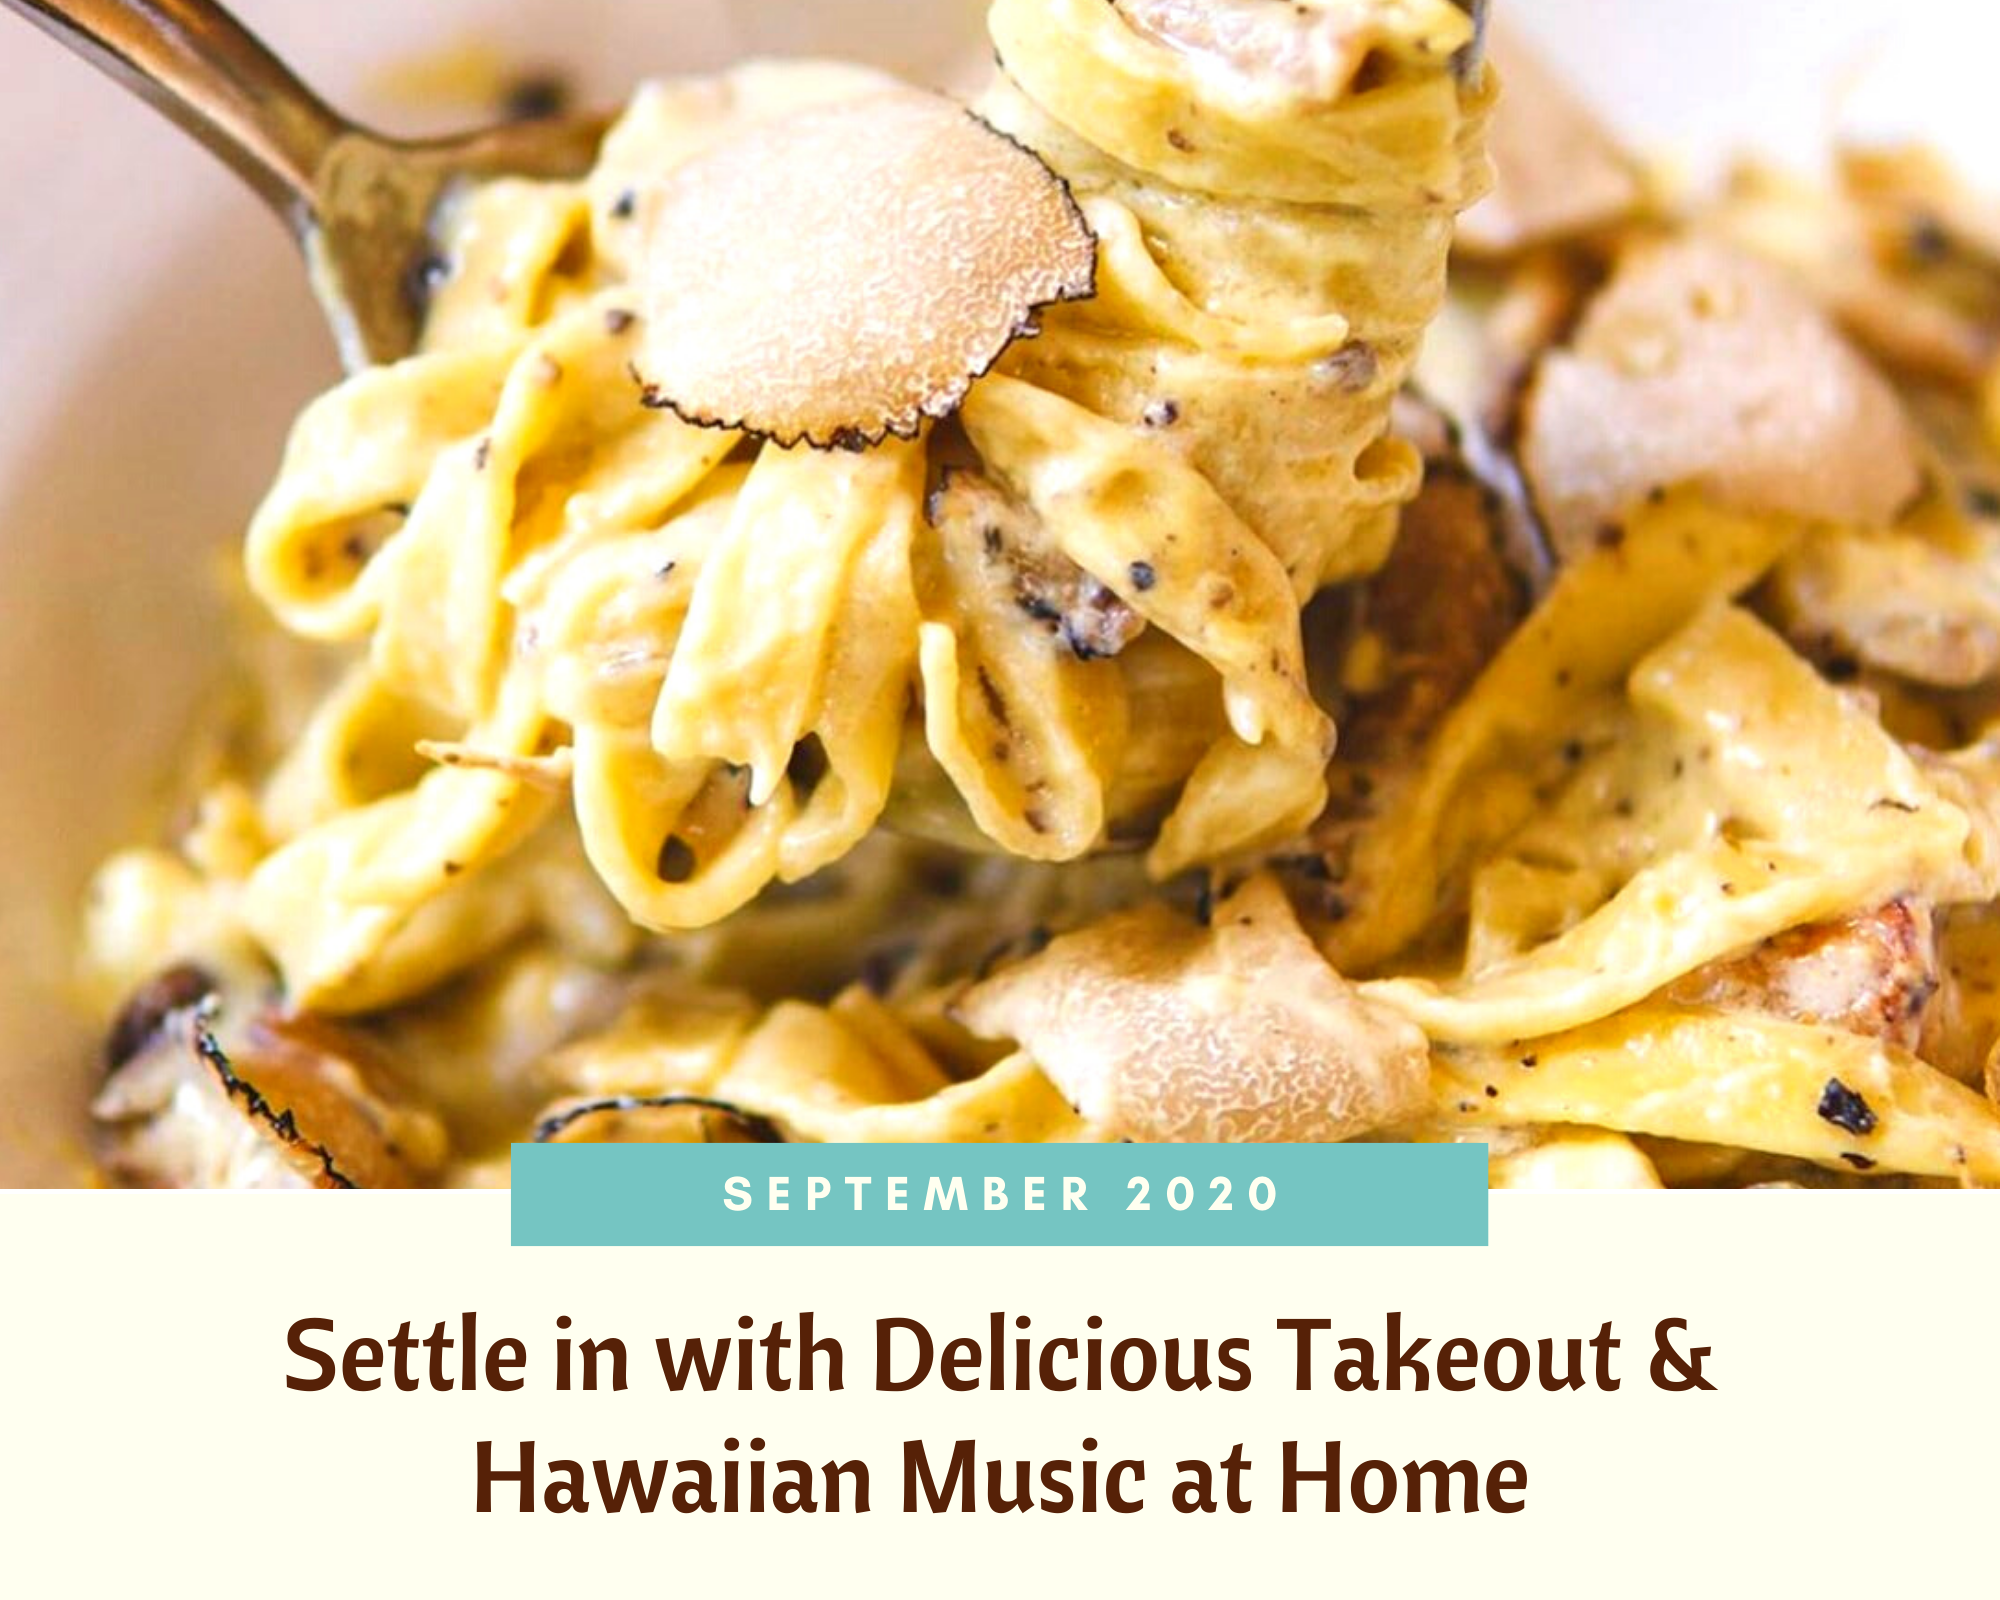 September 2020: Settle in with Delicious Takeout & Hawaiian Music at Home